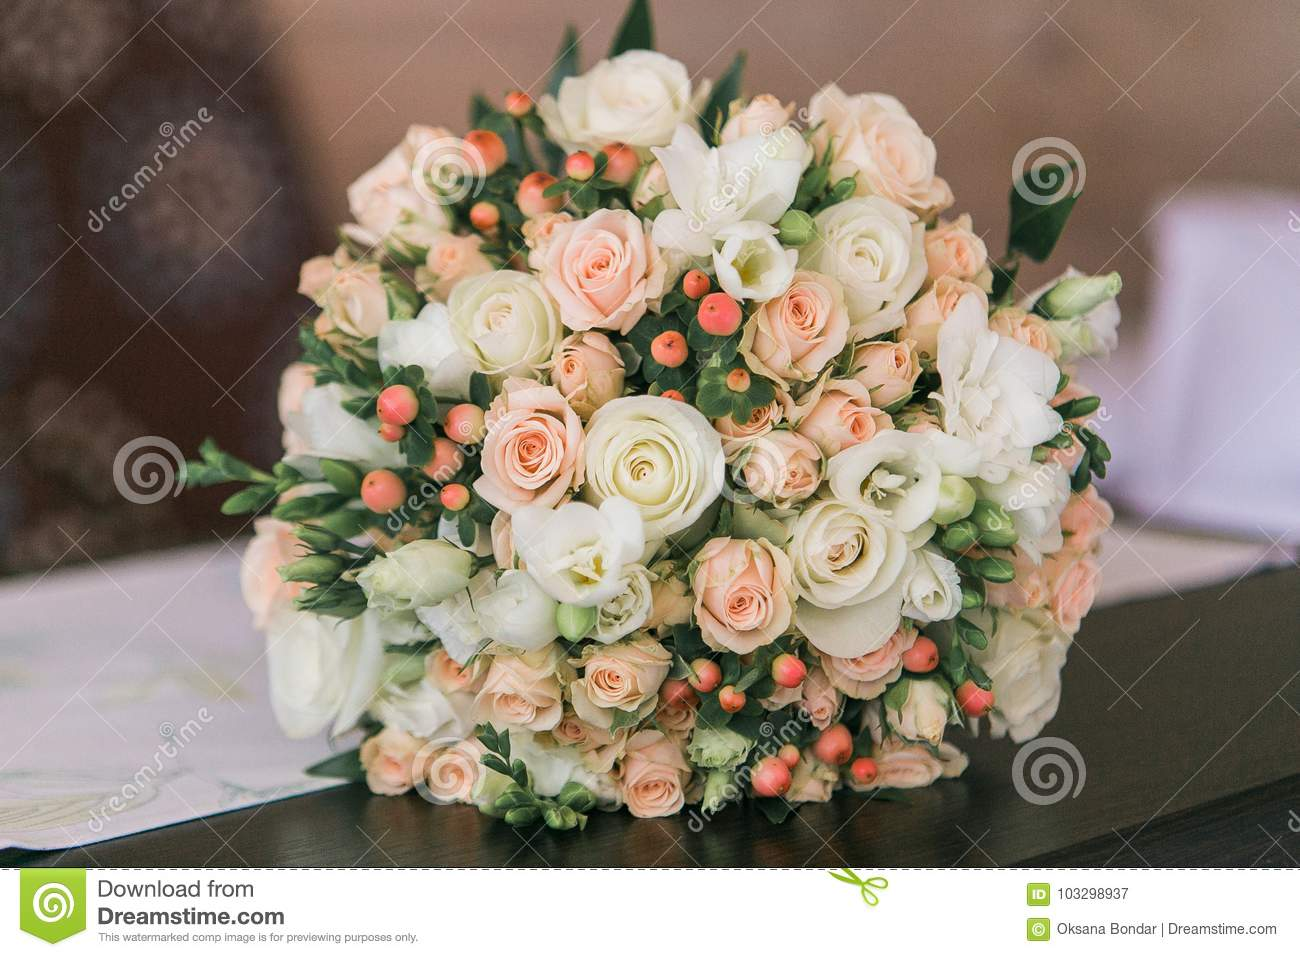 Wedding bouquet of small white and pastel pink roses and berries wedding bouquet of small white and pastel pink roses and berries mightylinksfo